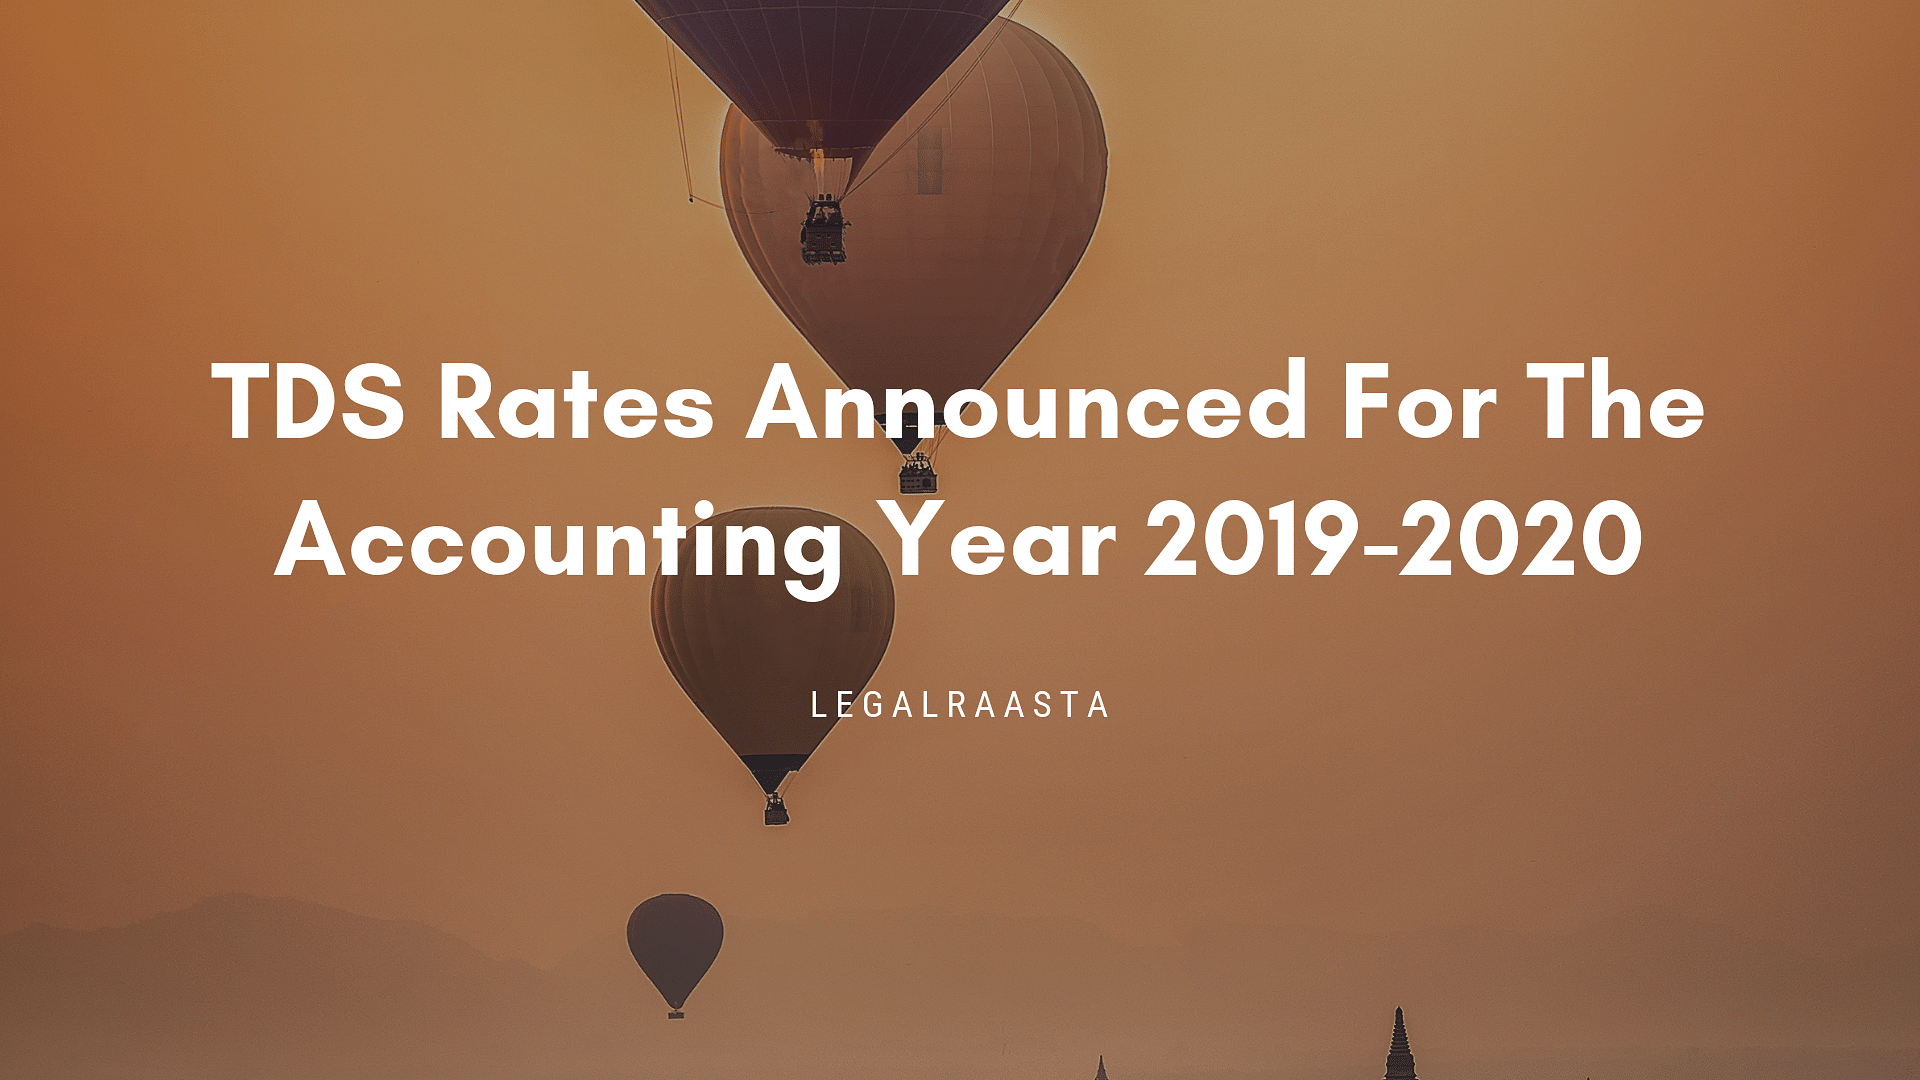 TDS rates of the accounting year 2019-2020